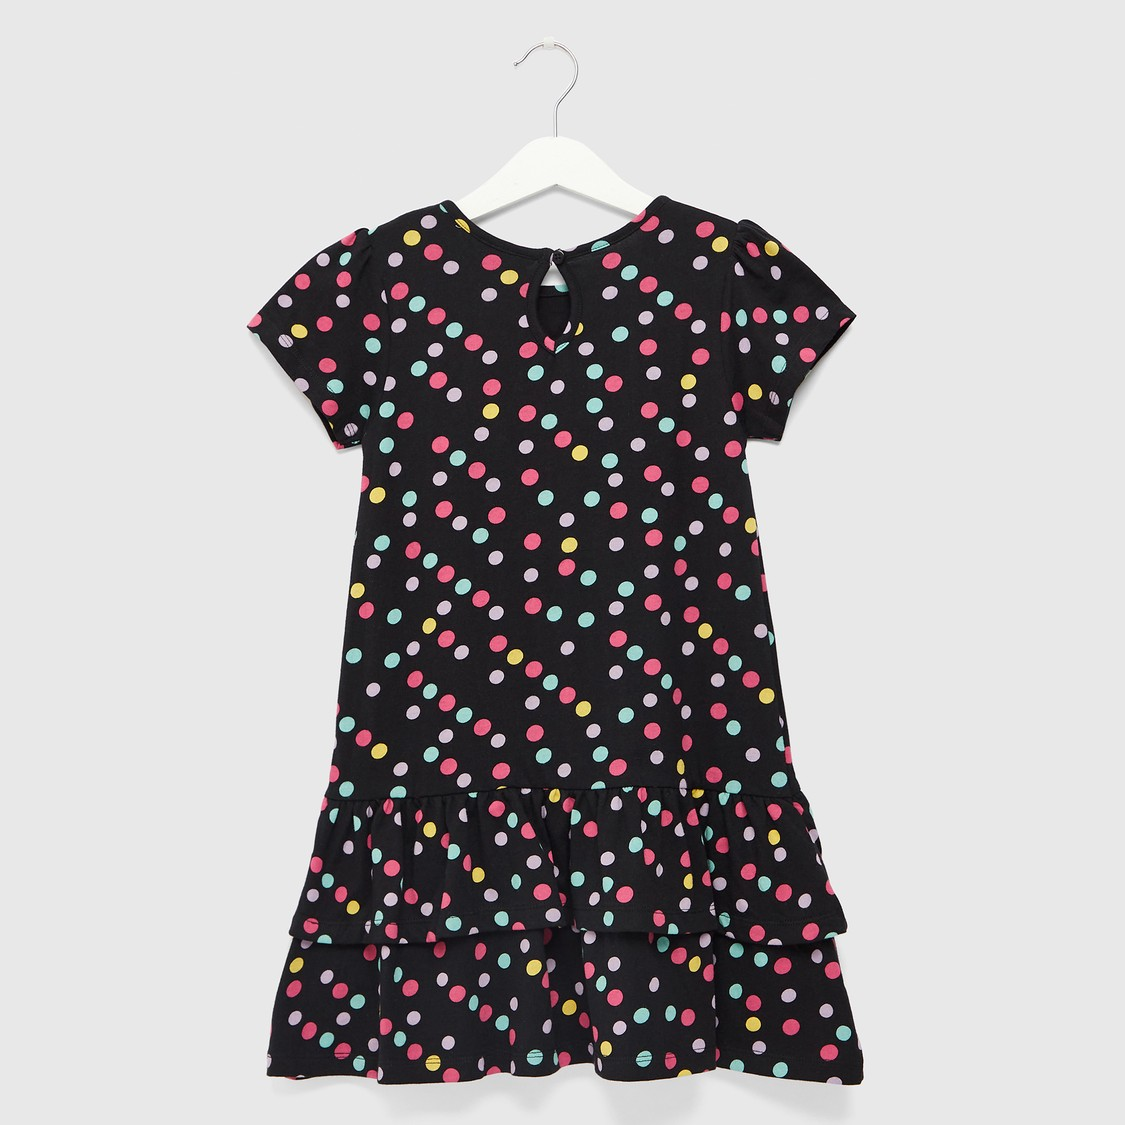 Polka Dot Print Round Neck Tiered Dress with Cap Sleeves